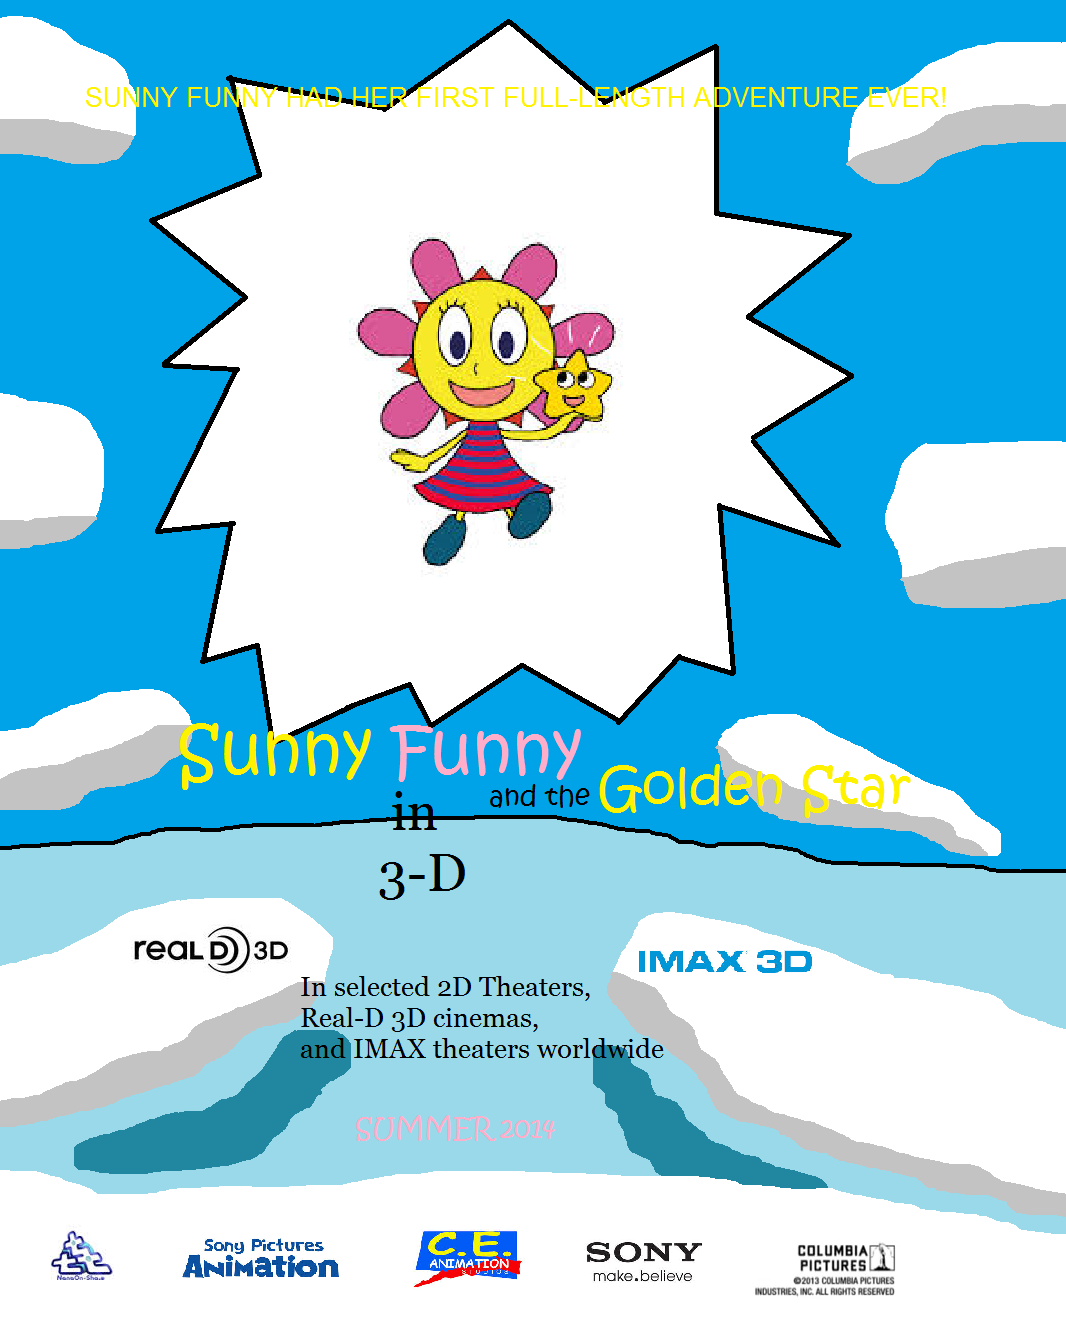 Sunny Funny and the Golden Star